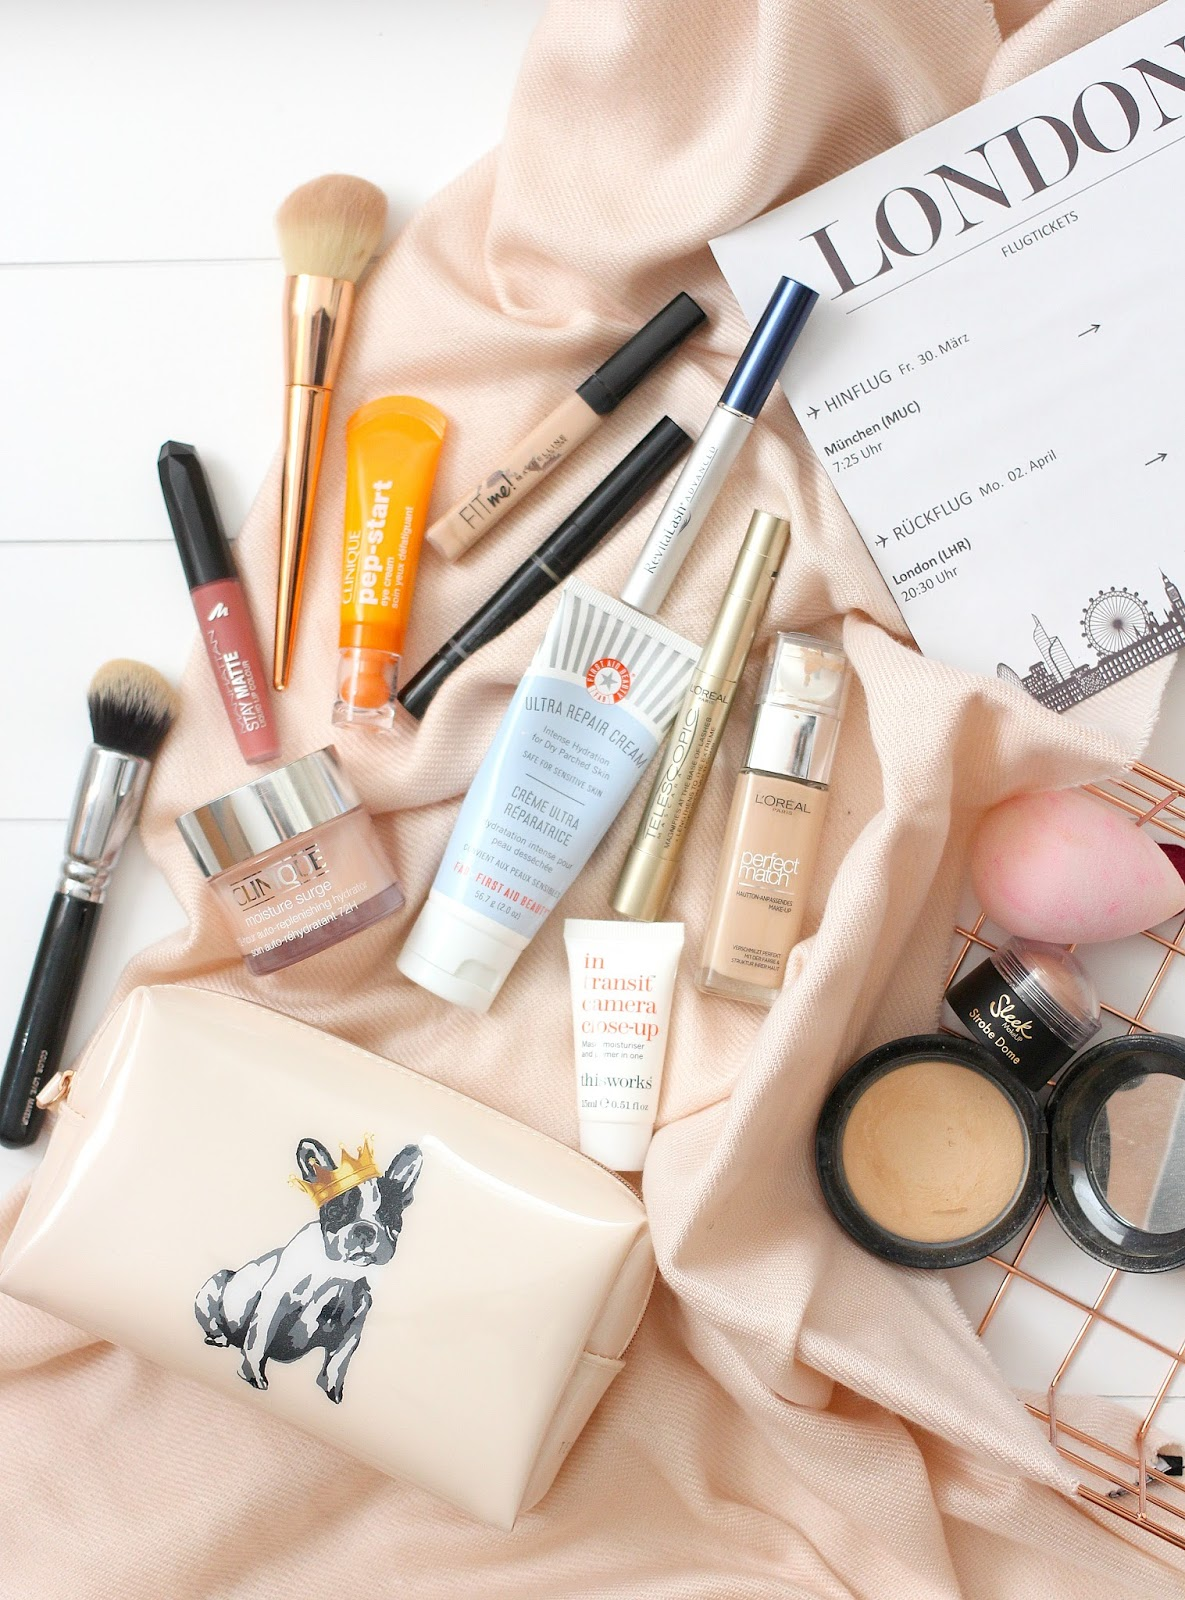 City Break Makeup & Skincare Bag